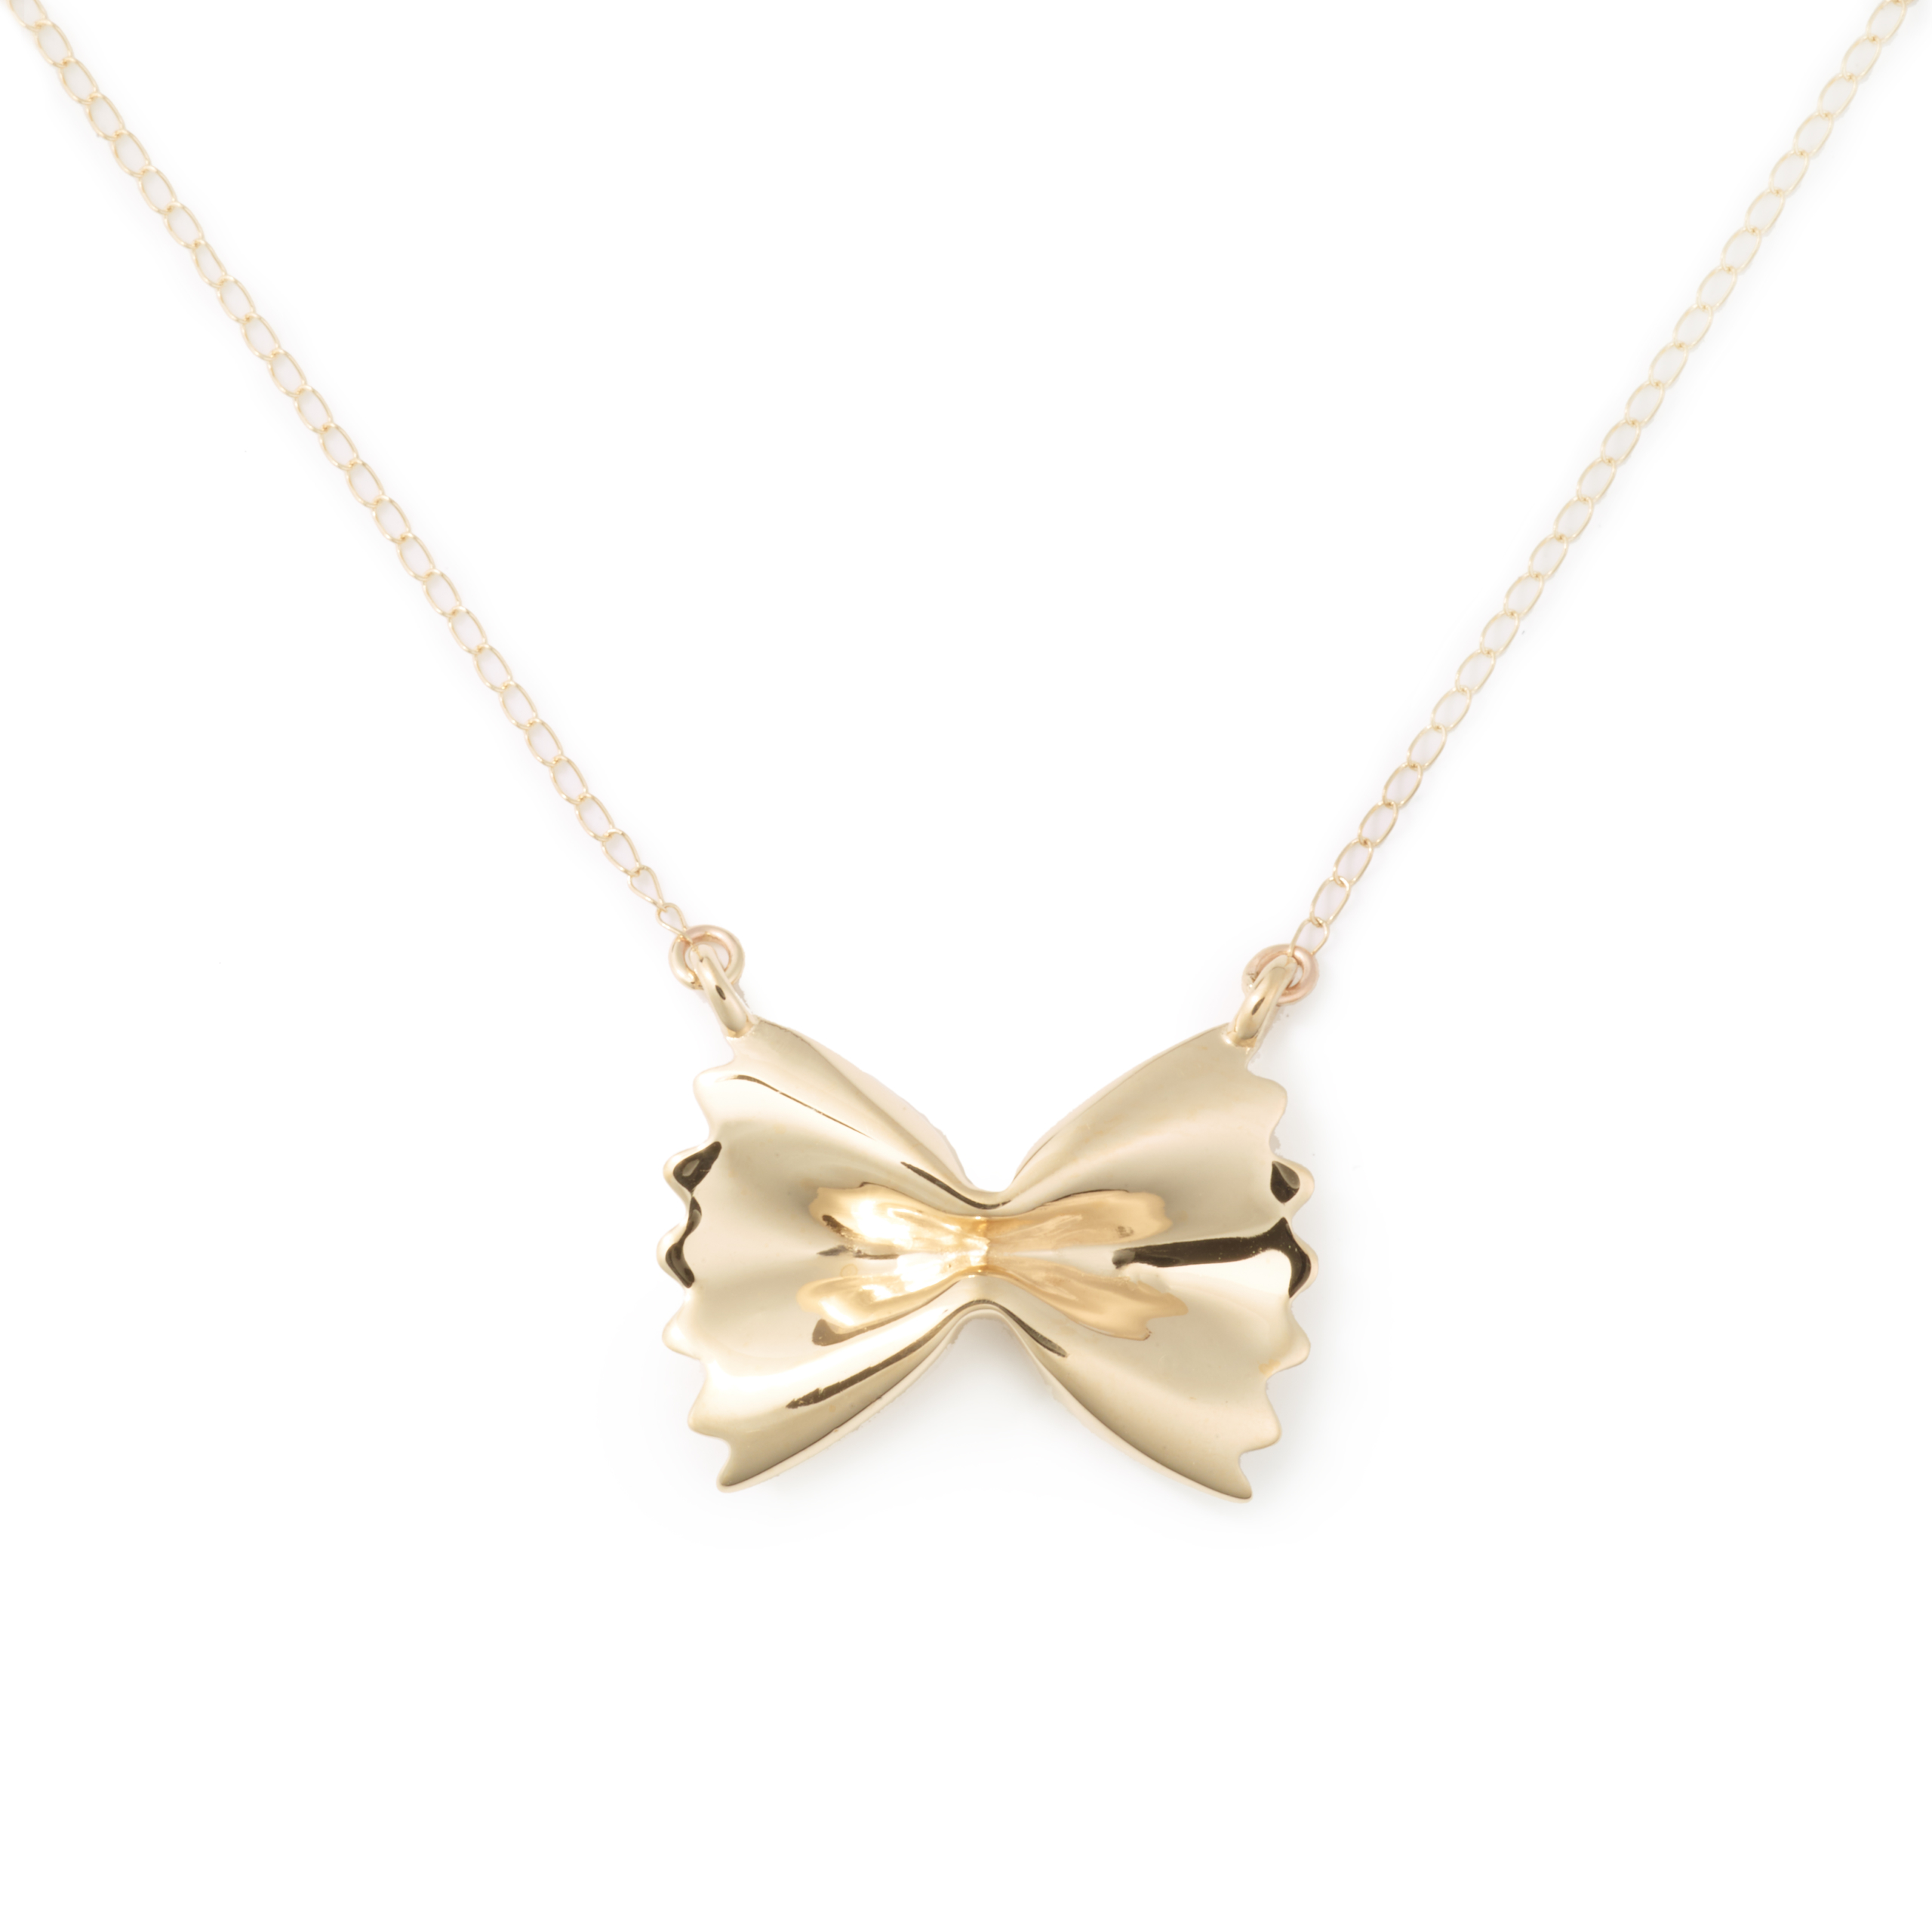 Gold Plated Farfalle Necklace